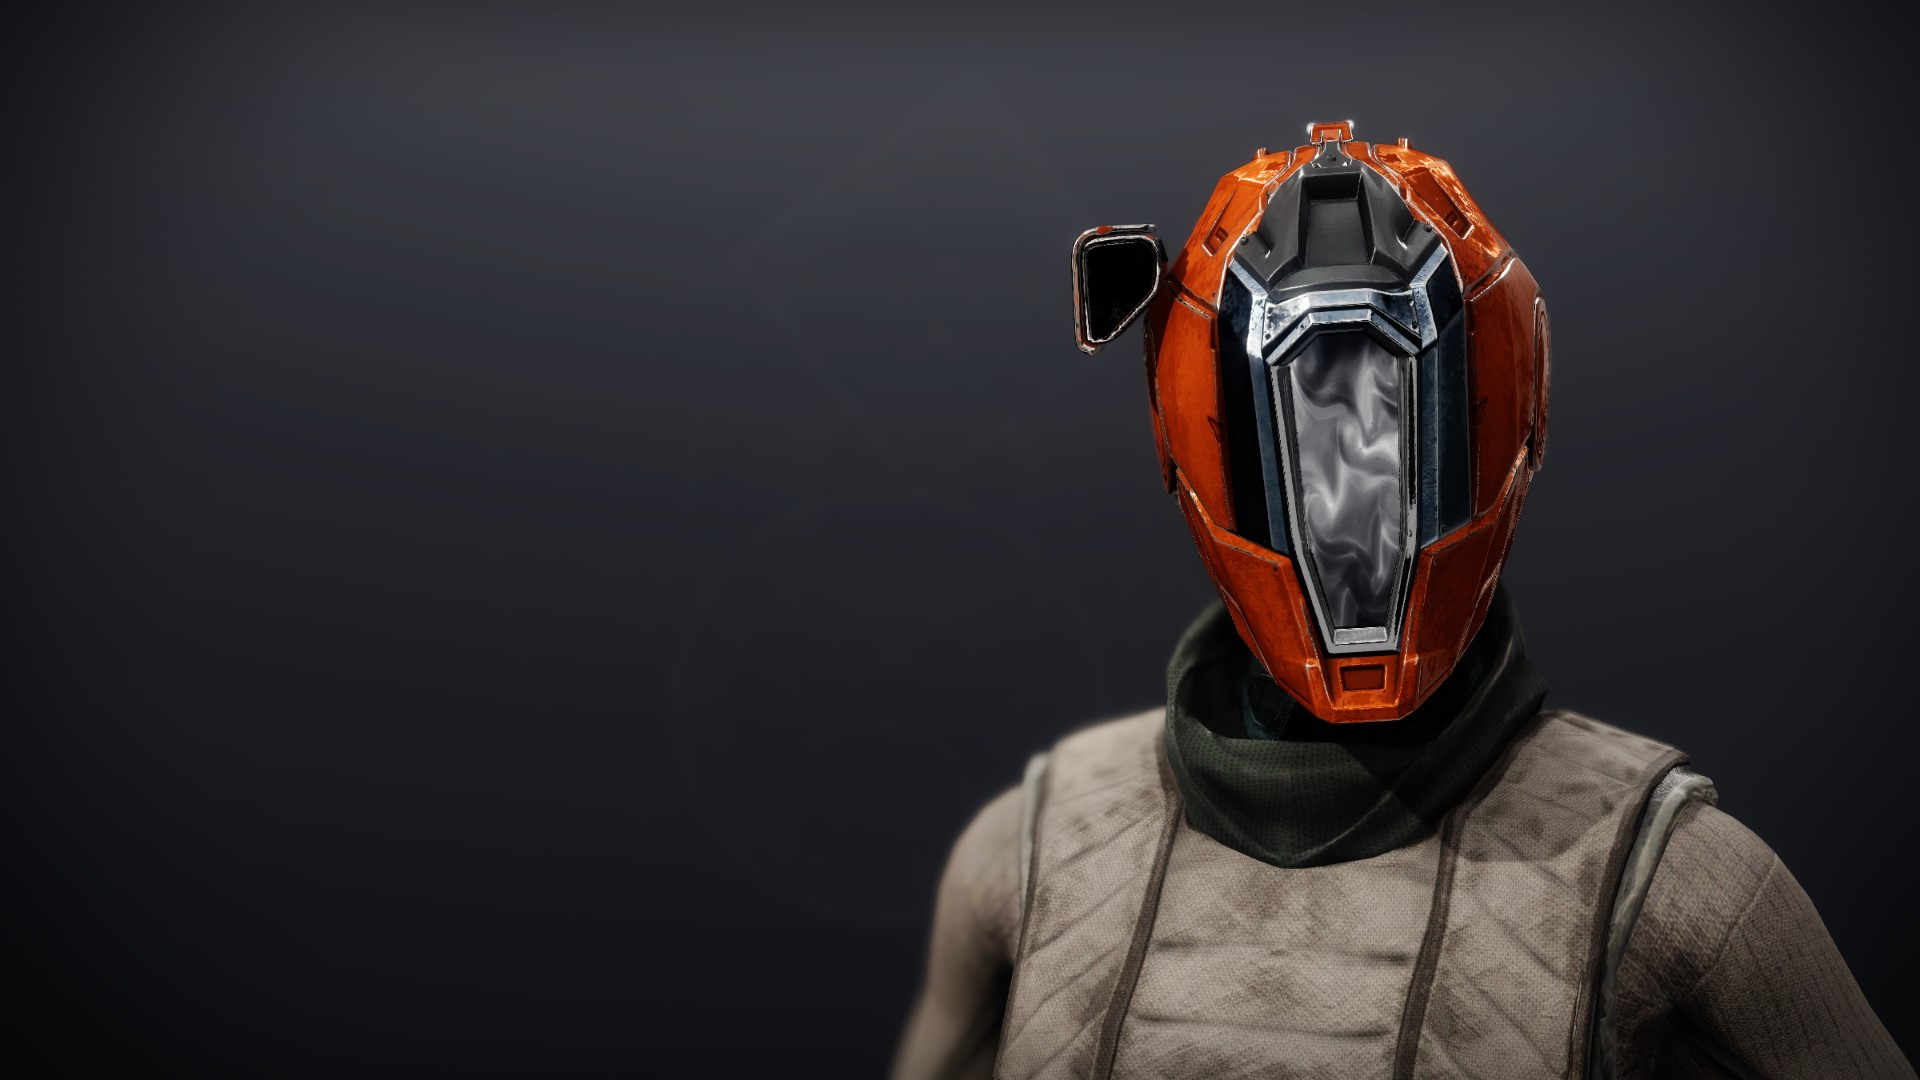 An in-game render of the Phobos Warden Cowl.